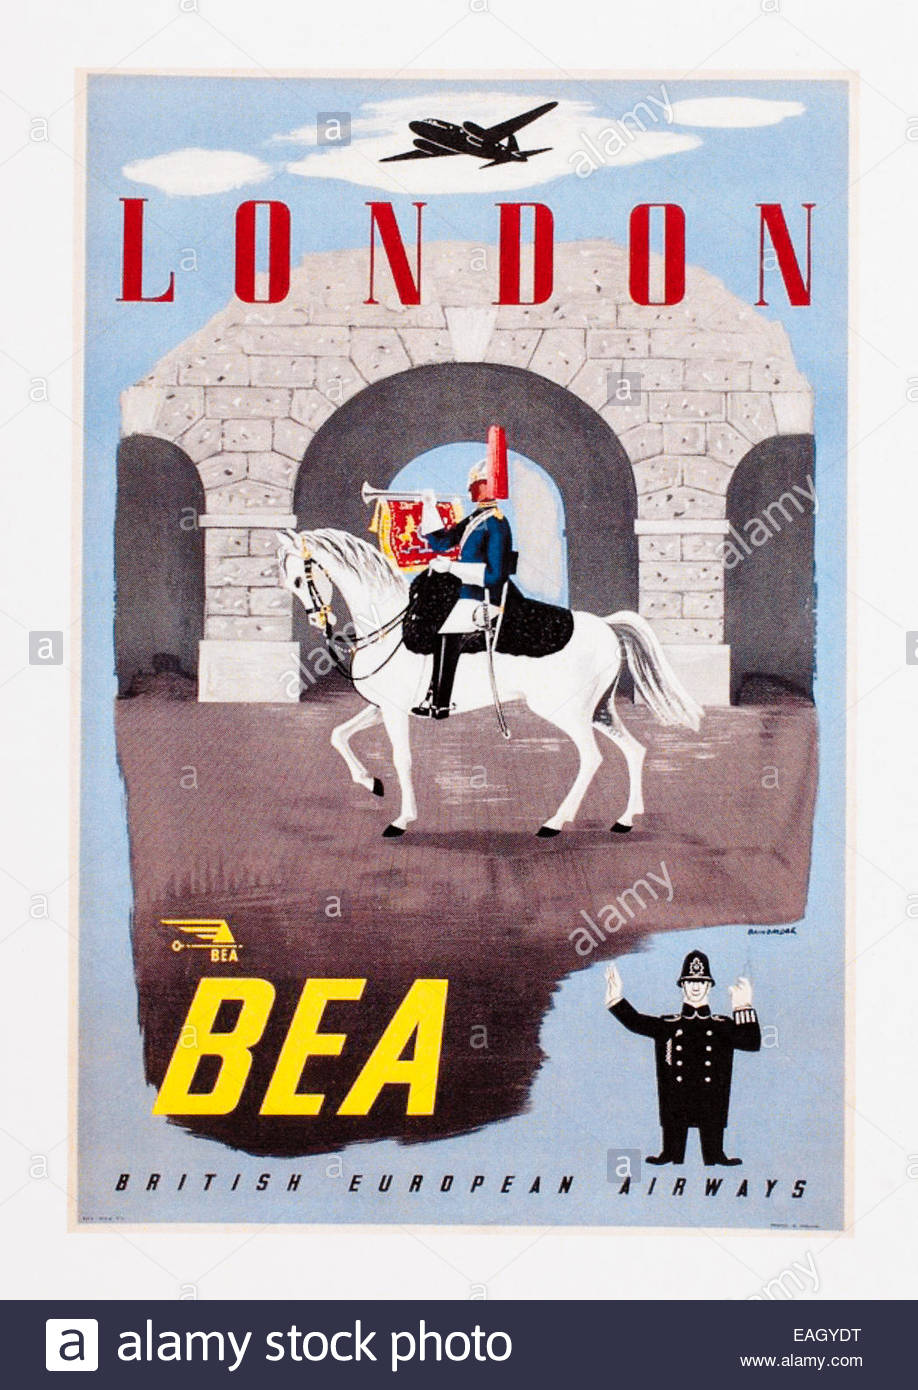 Oldtimer Reise Plakatwerbung London BEA British European Airways. Datum der Erstellung des 1950. Editorial nur Stockbild